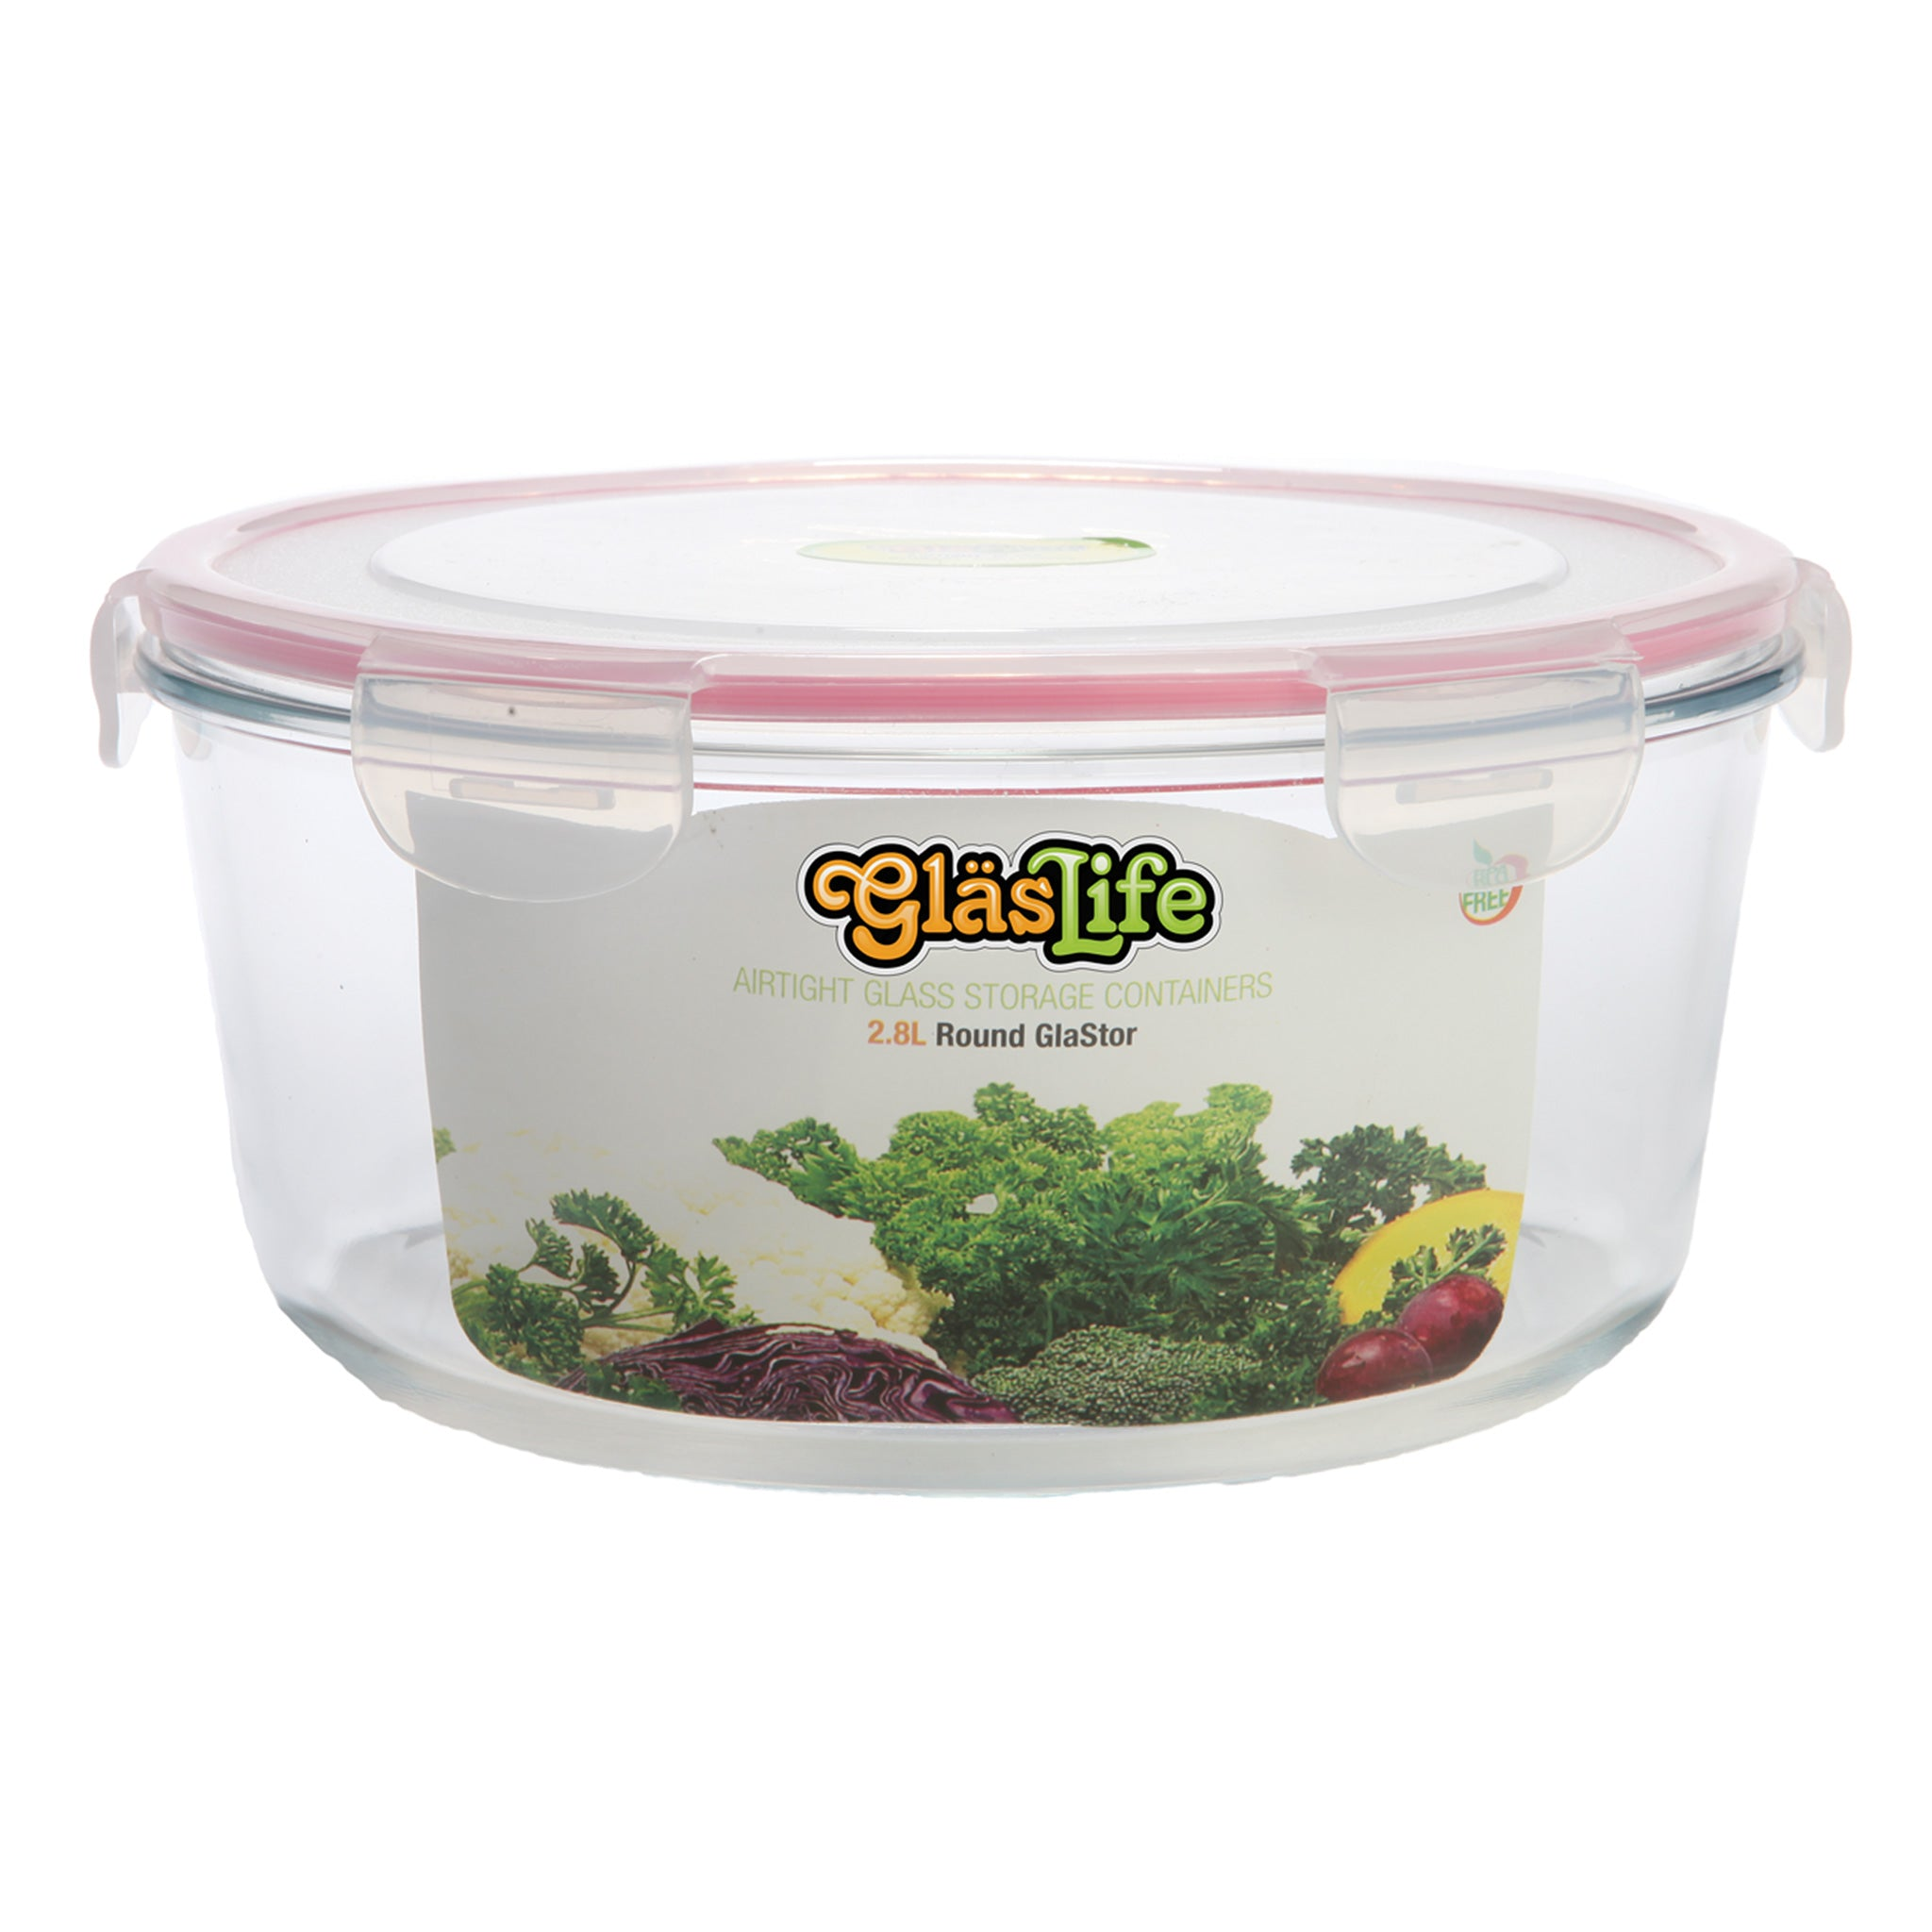 GlasLife® Air-Tight Glass Storage Container - Round